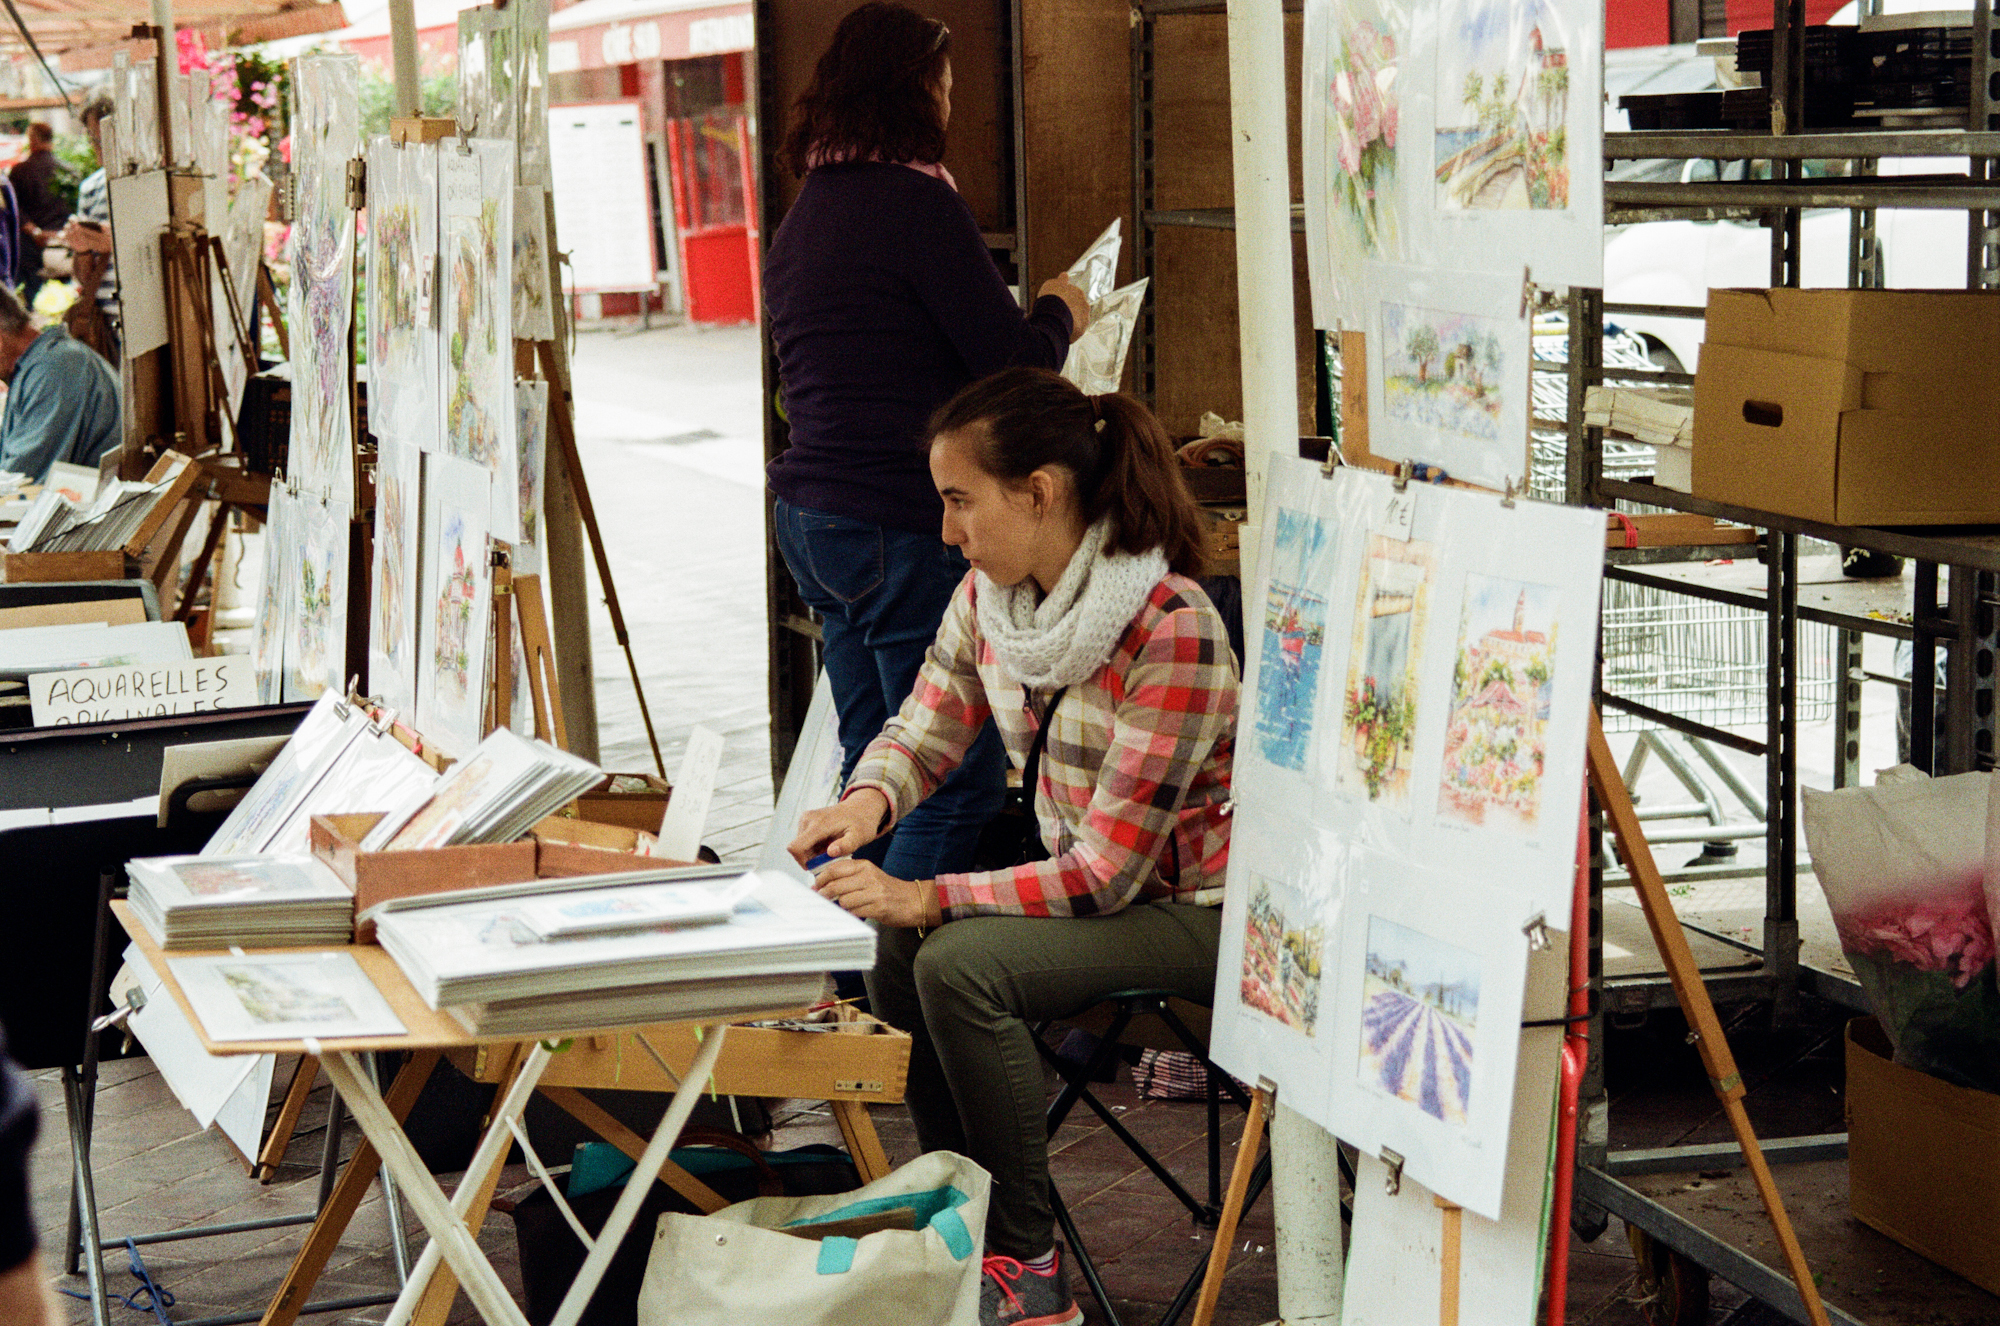 artist selling prints at Cours Saleya market  in Nice